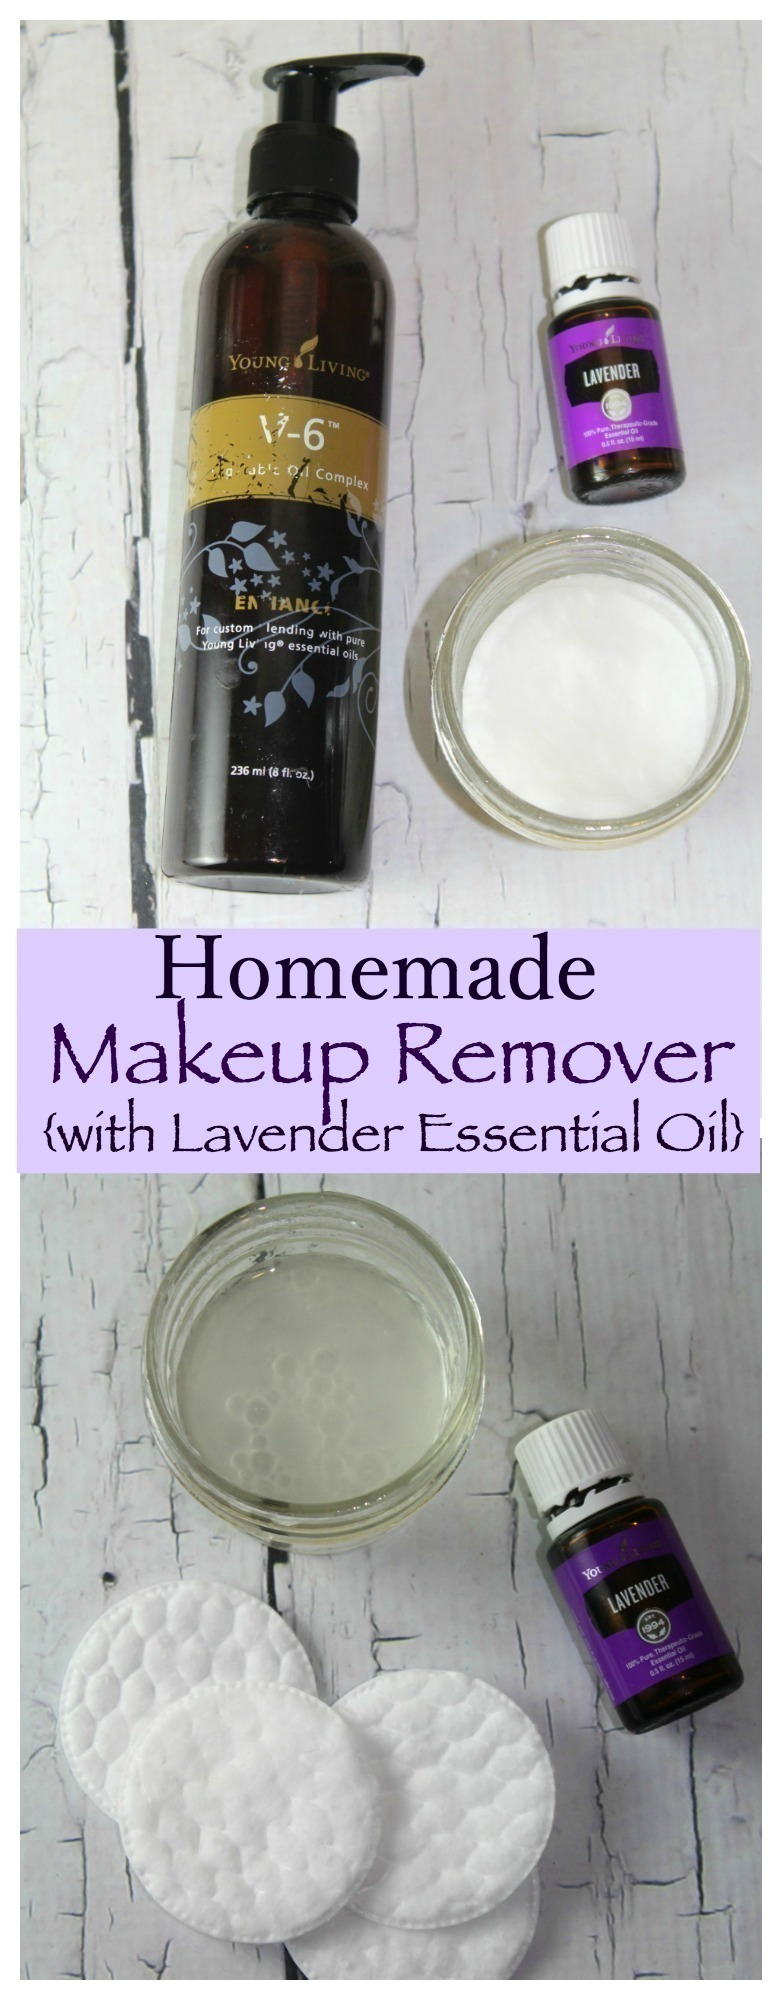 This Homemade Makeup Remover with Lavender Essential Oil is SUPER easy to make and would be a wonderful addition to your personal beauty regimen!